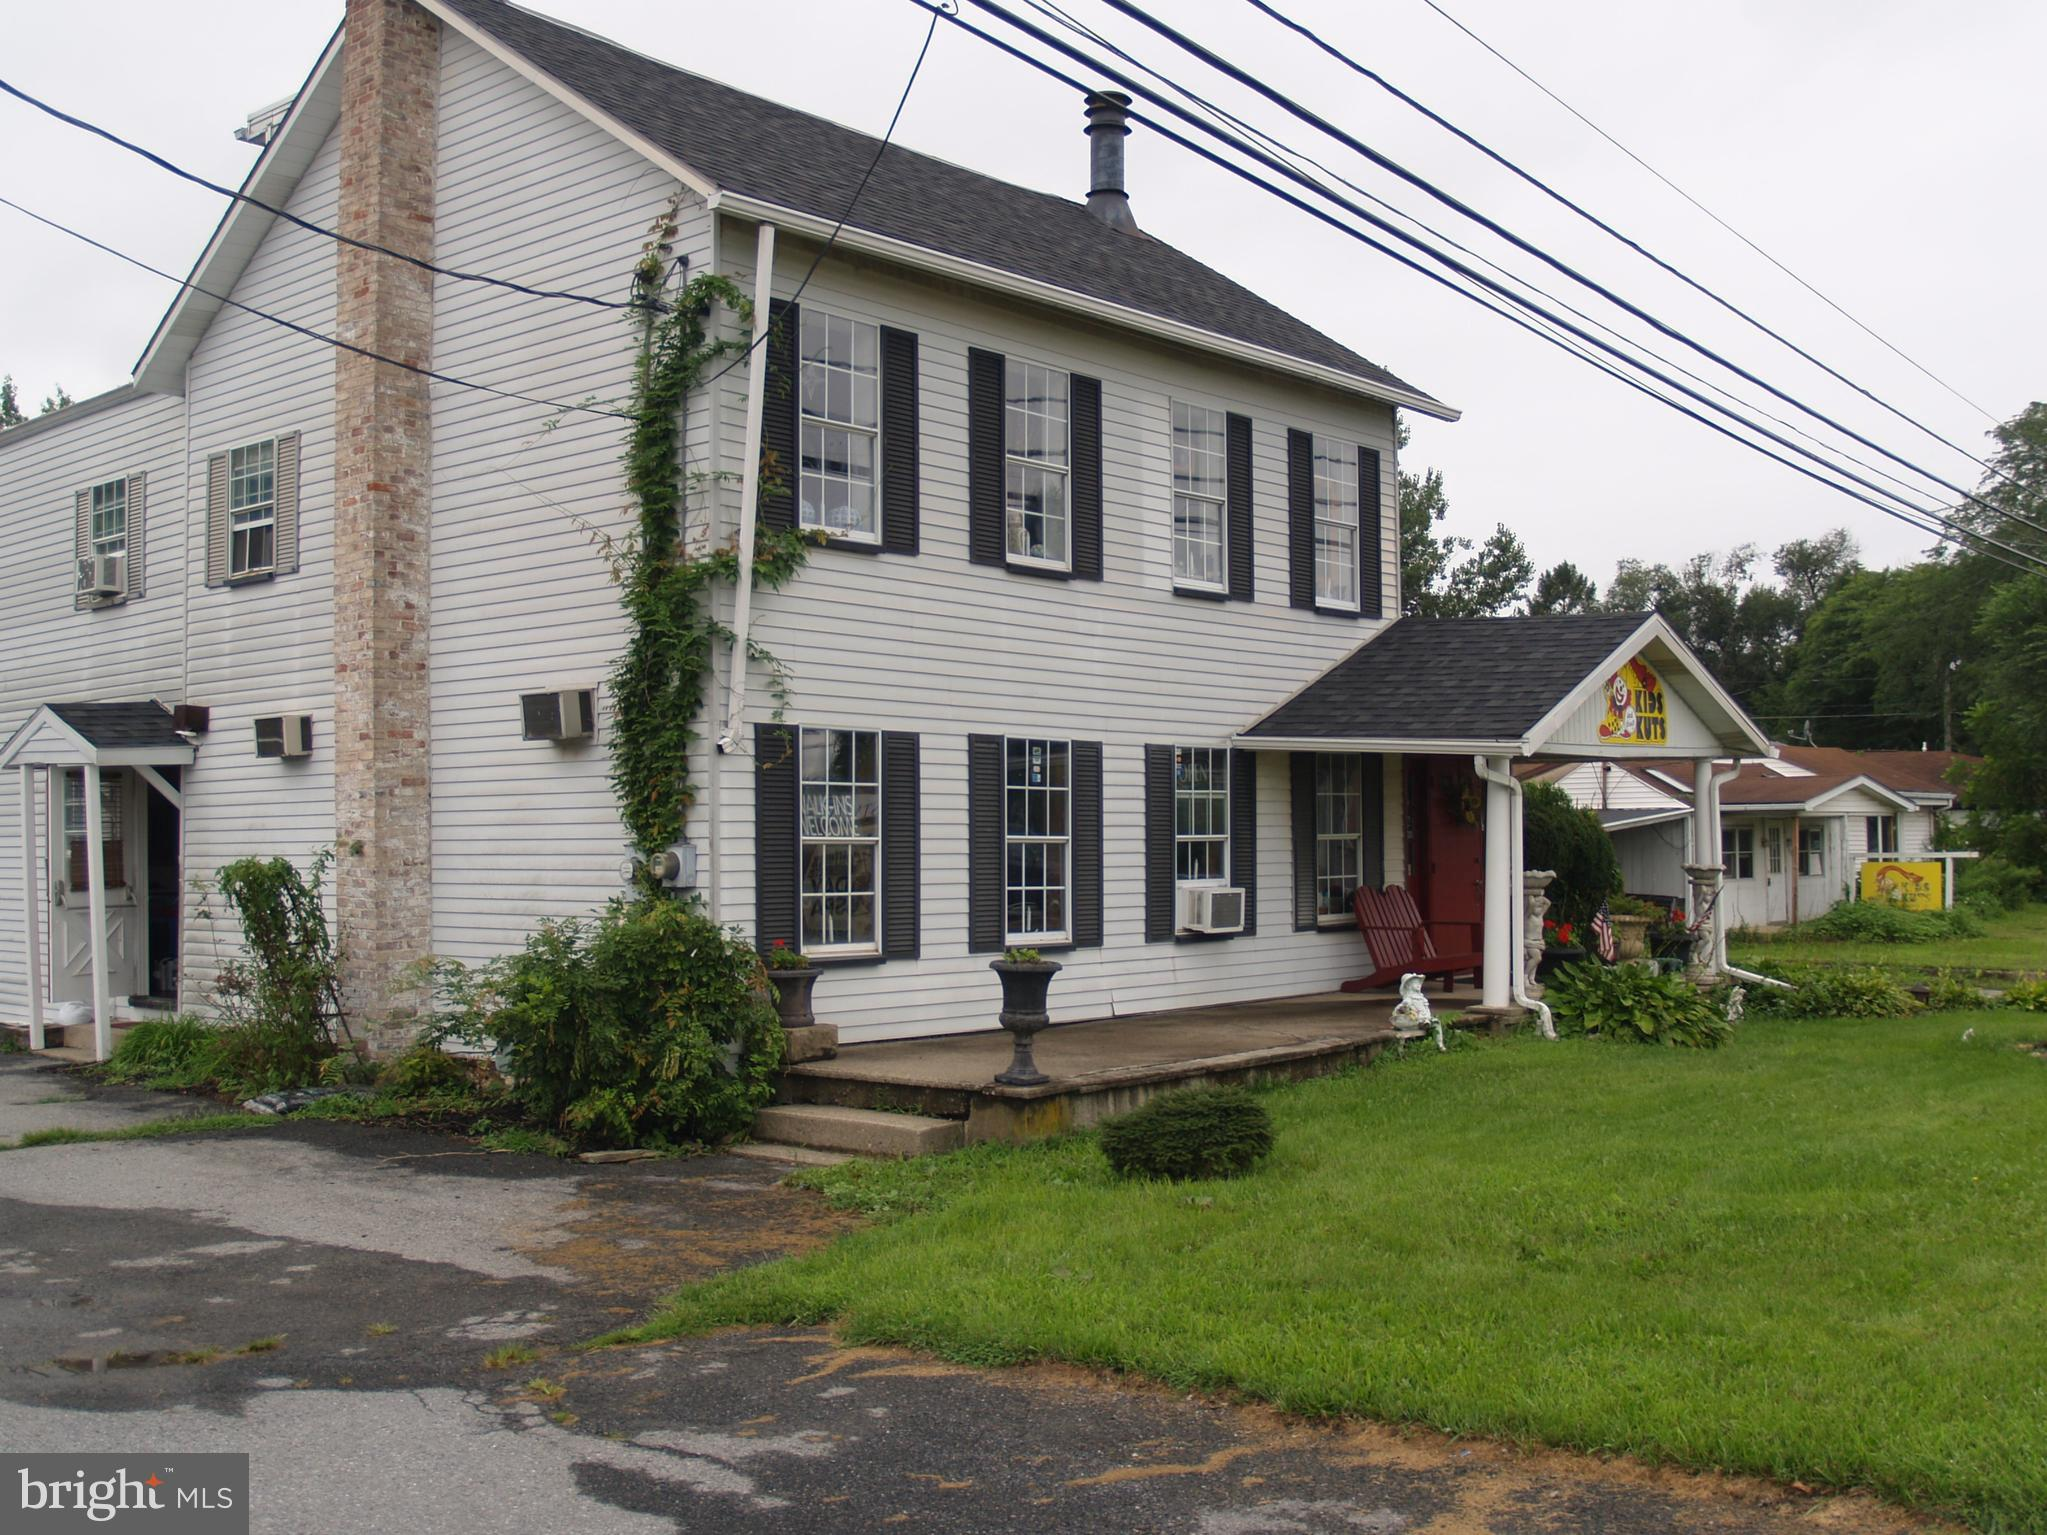 NAZARETH ROAD, EASTON, PA 18045